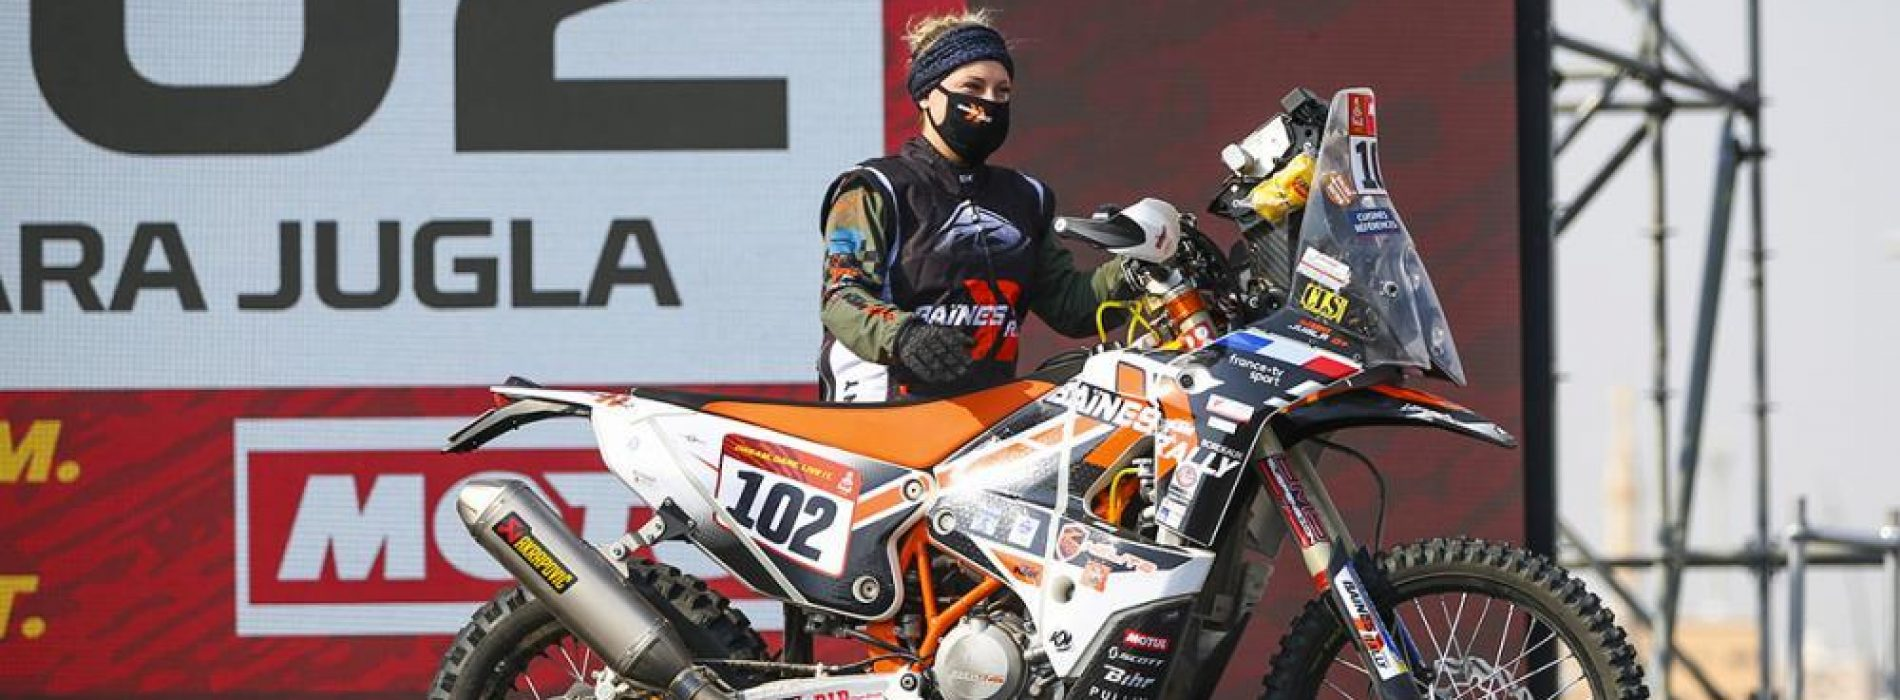 Sara Jugla raced Dakar Rally 2021 for the first time- what an experience!